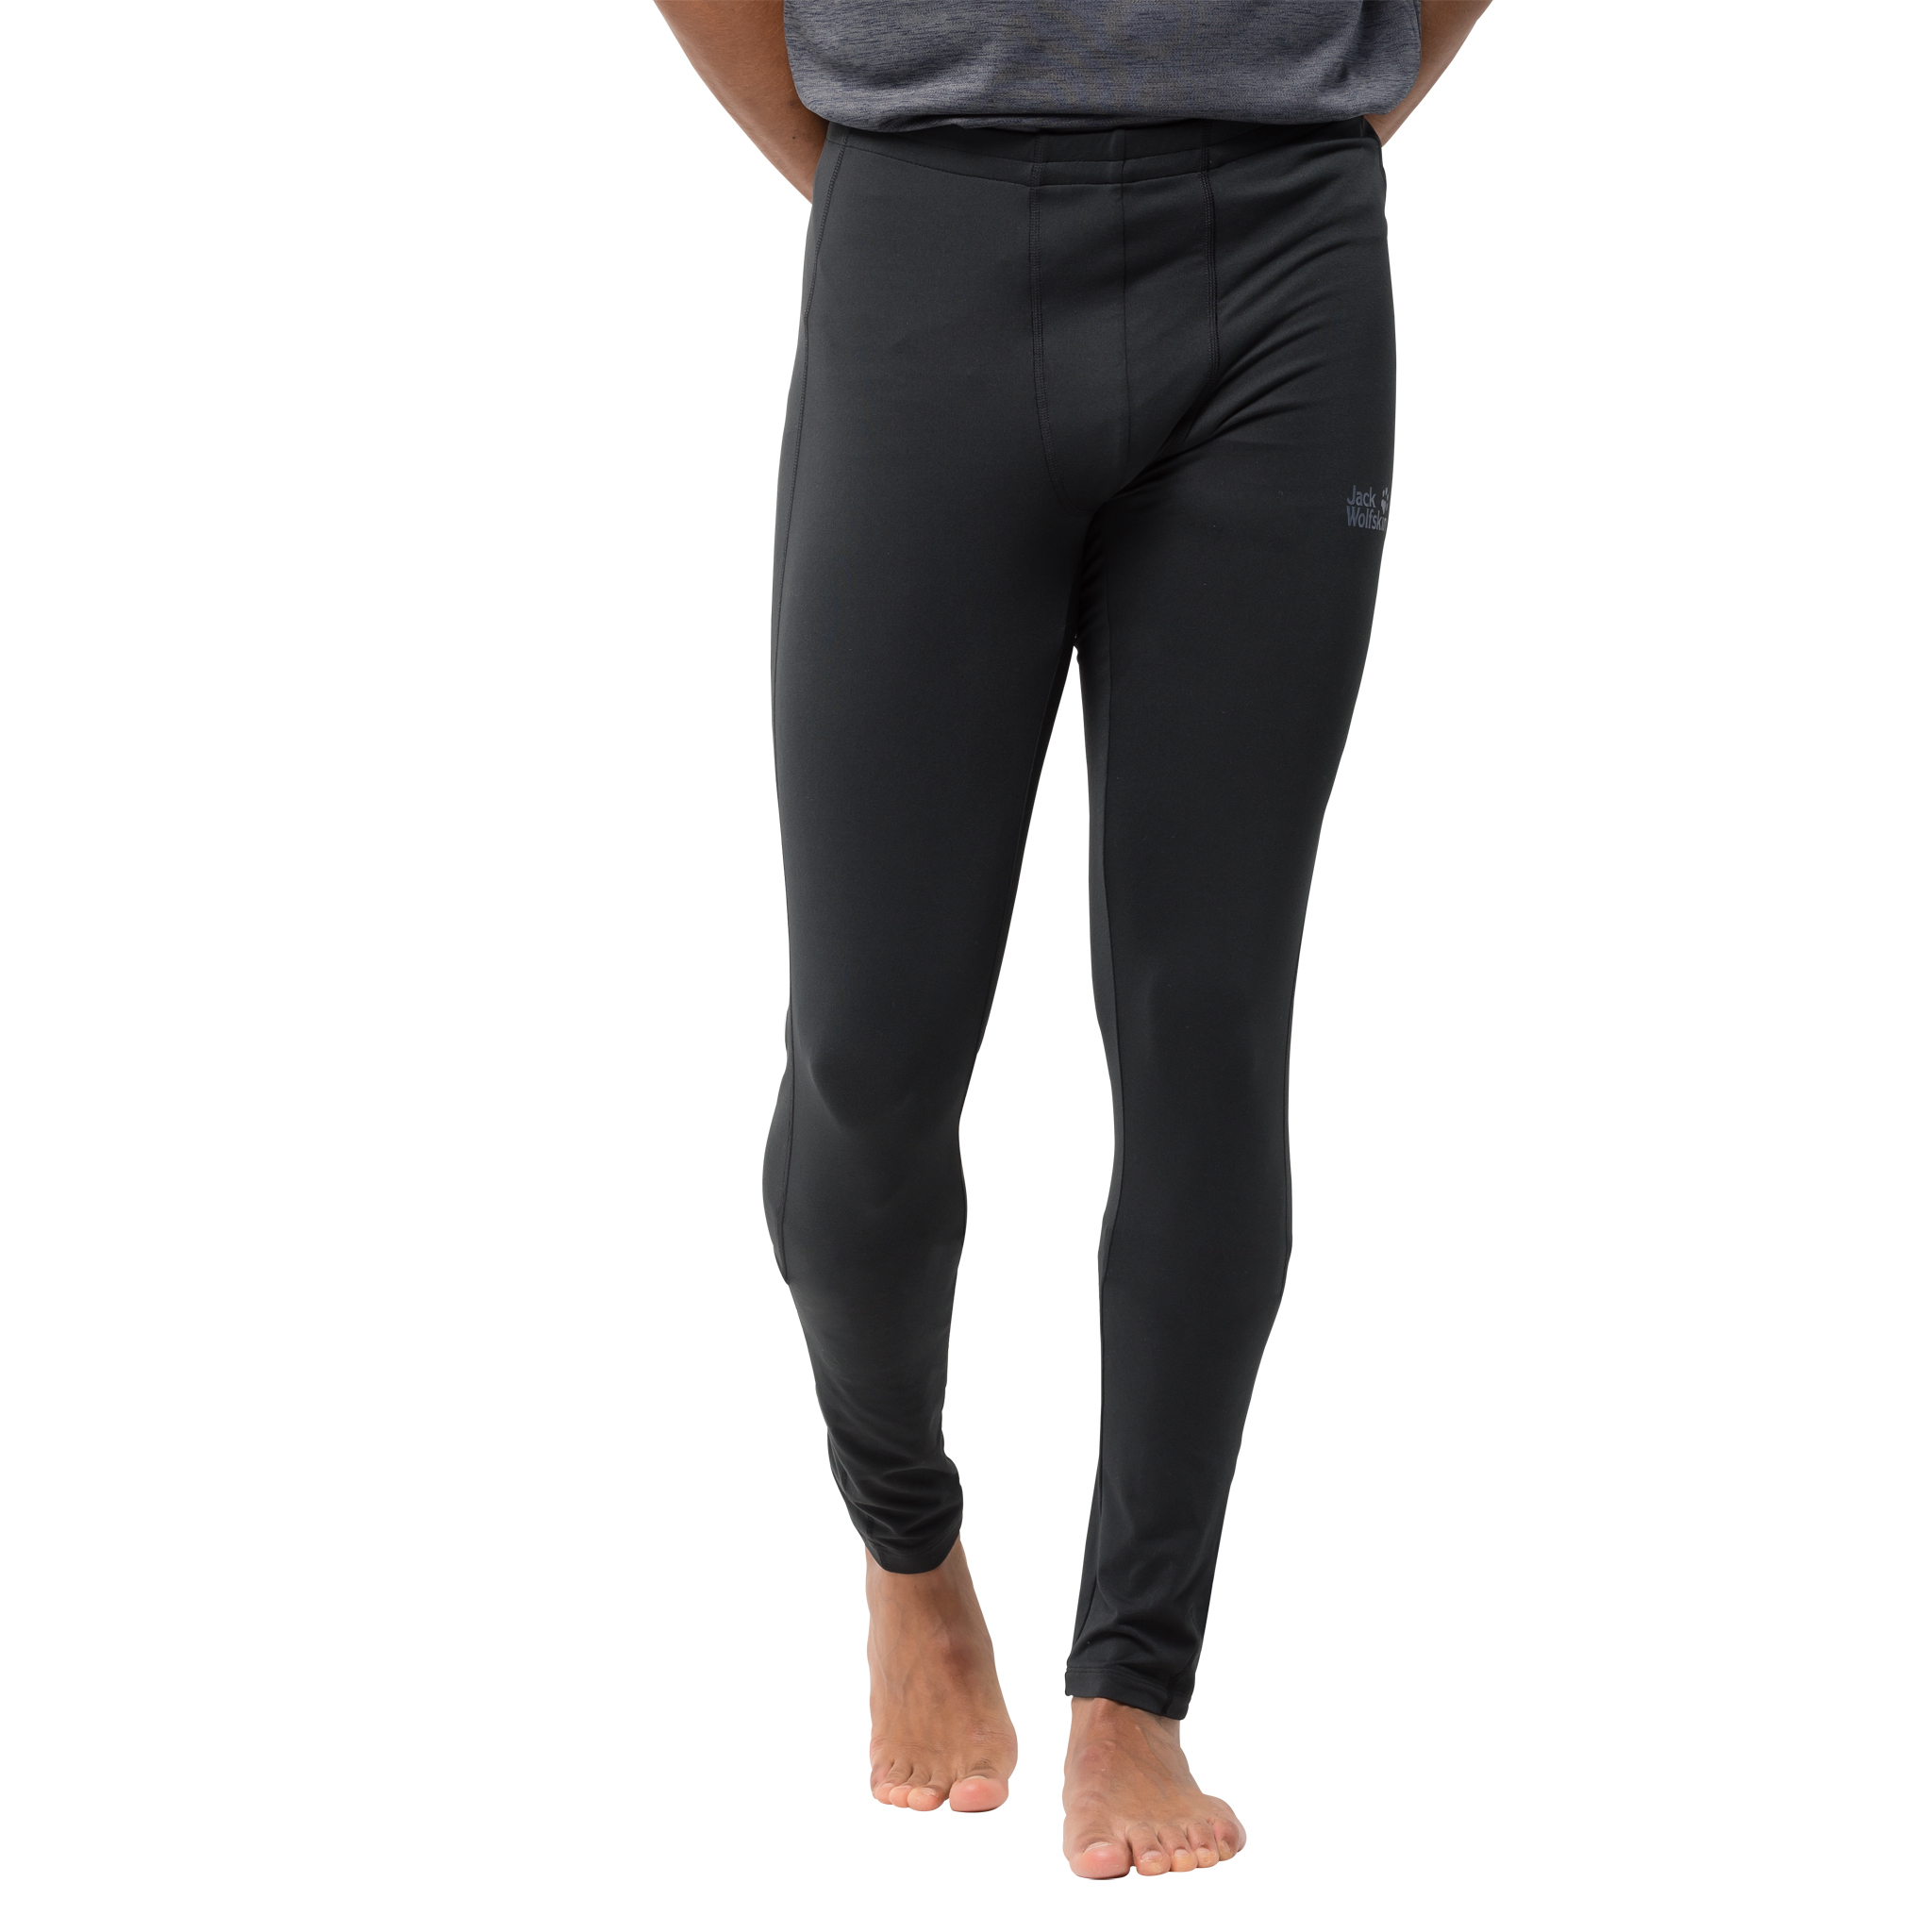 Legginsy HOLLOW RANGE TIGHTS MEN black - S